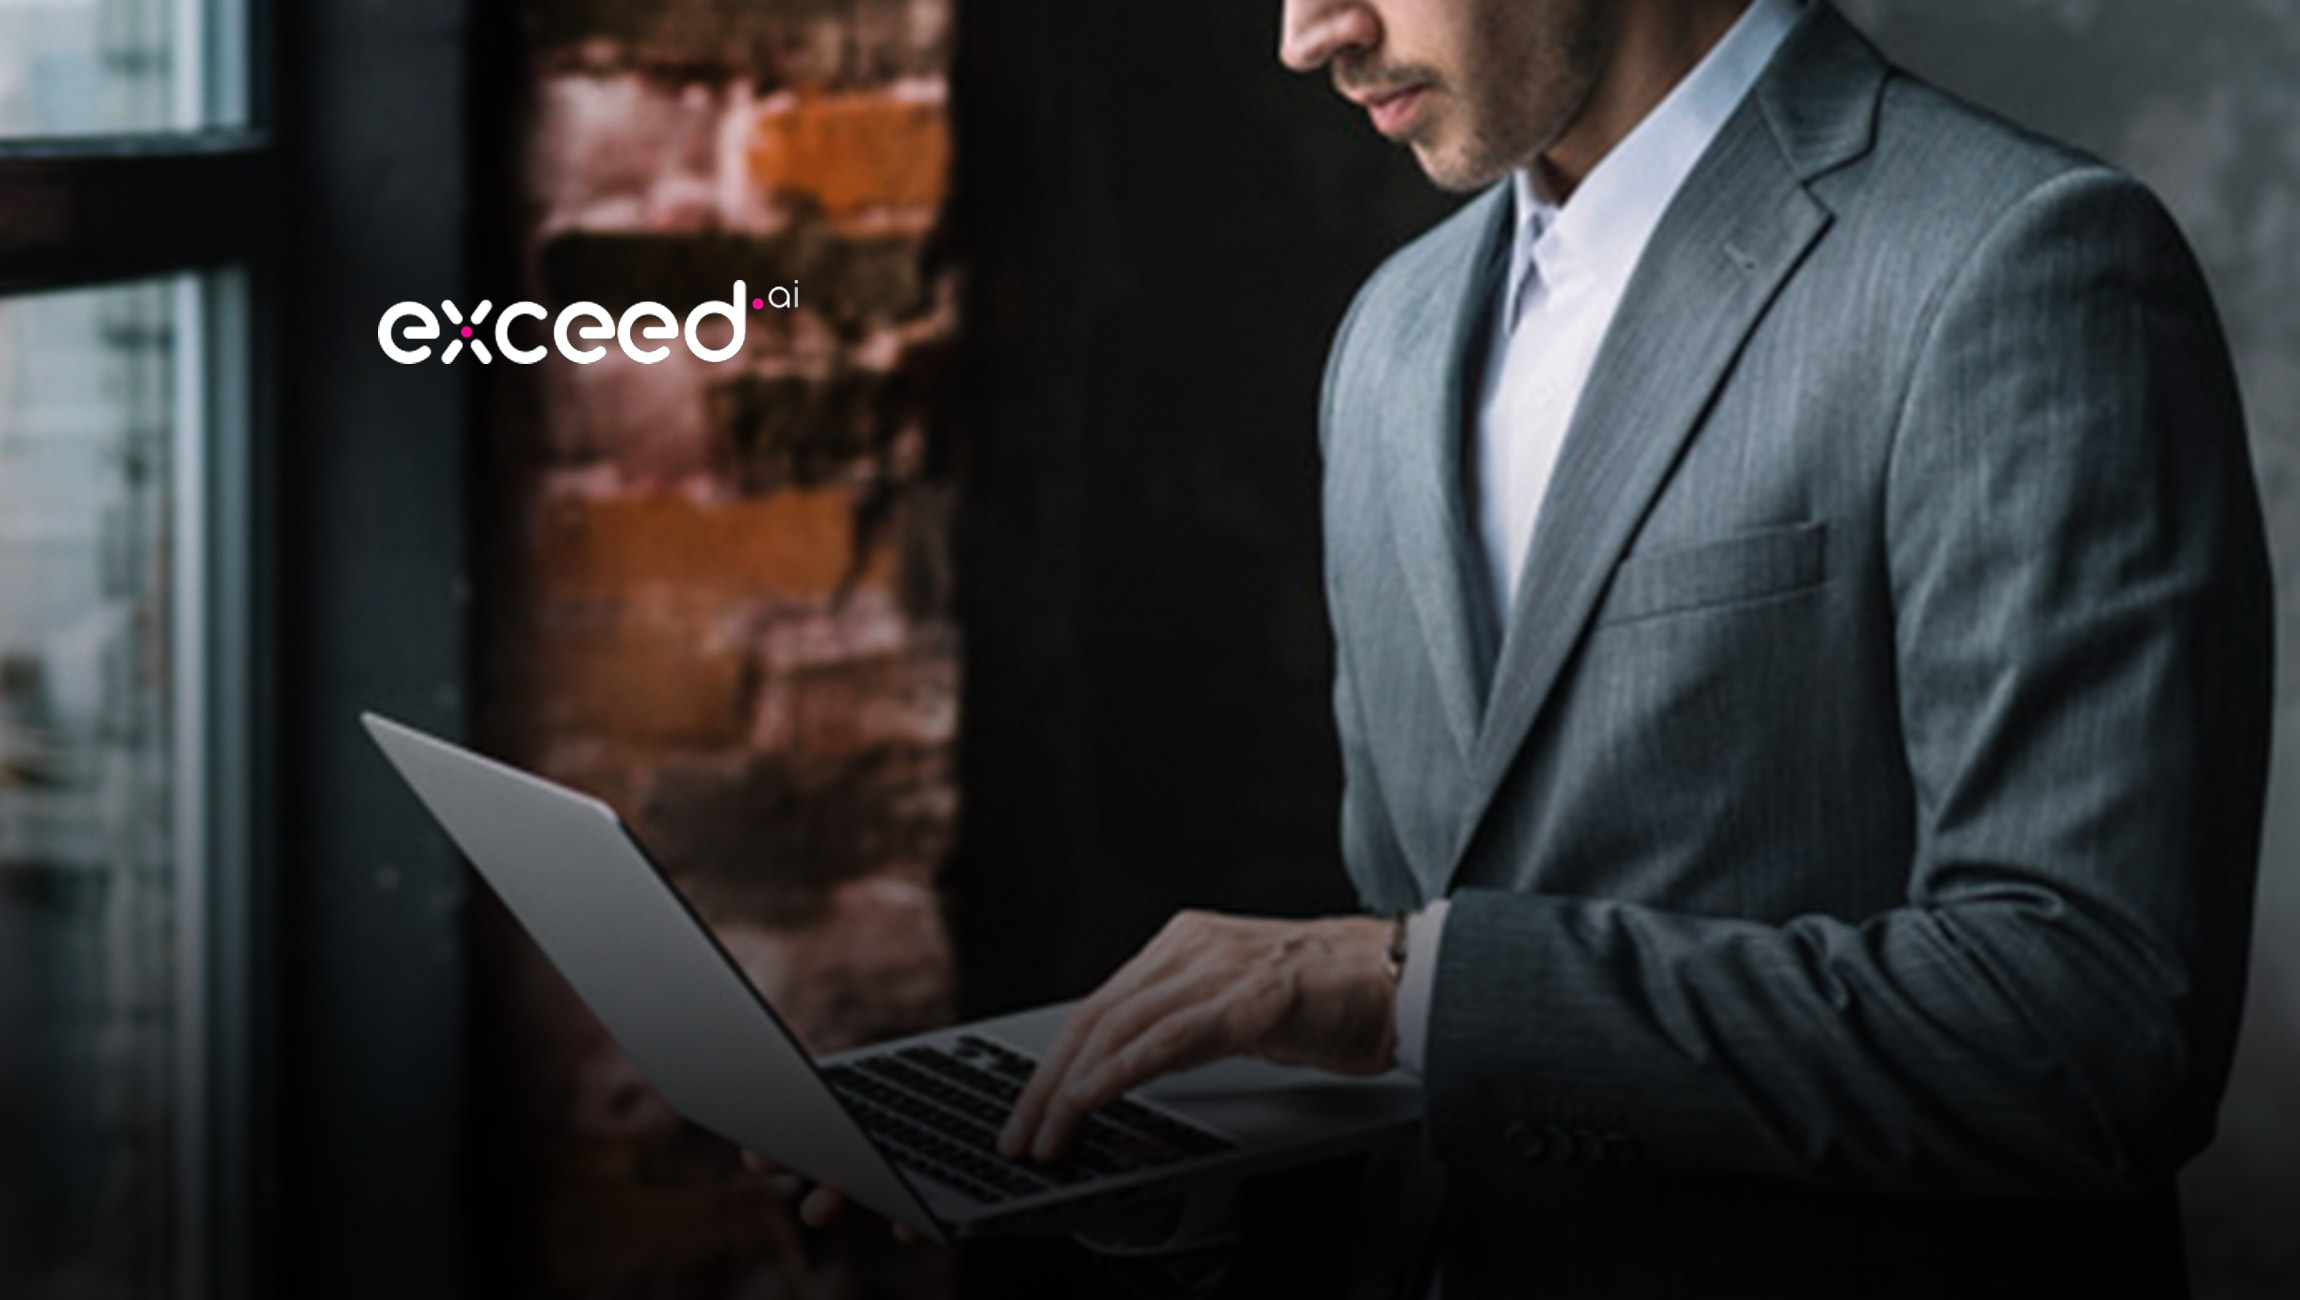 Exceed.ai-Raises-_4M-Seed-Round-for-AI-Assistant-that-Automatically-Qualifies-Marketing-Leads